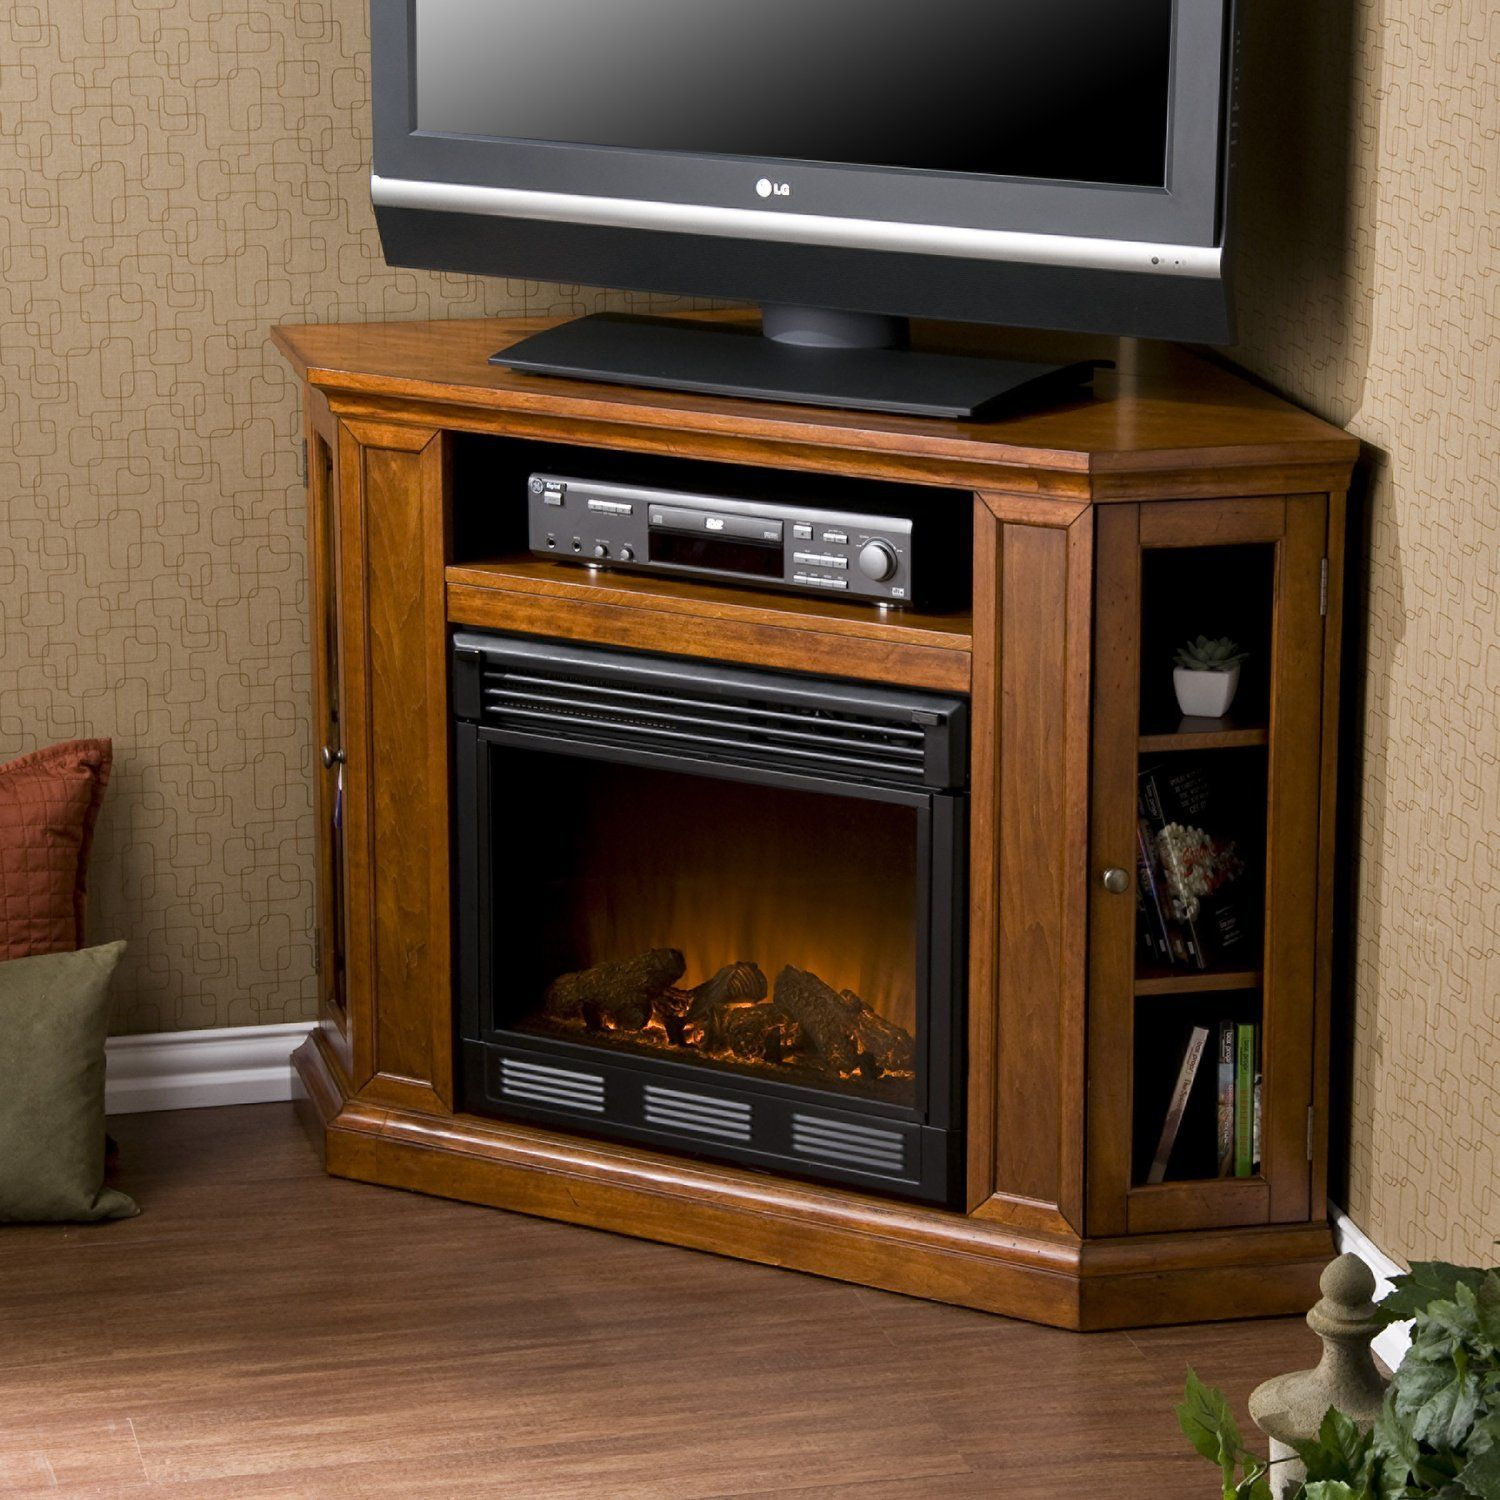 Convertible Electric Corner Fireplace TV Stand in Mahogany - Convertible Electric Corner Fireplace TV Stand In Mahogany